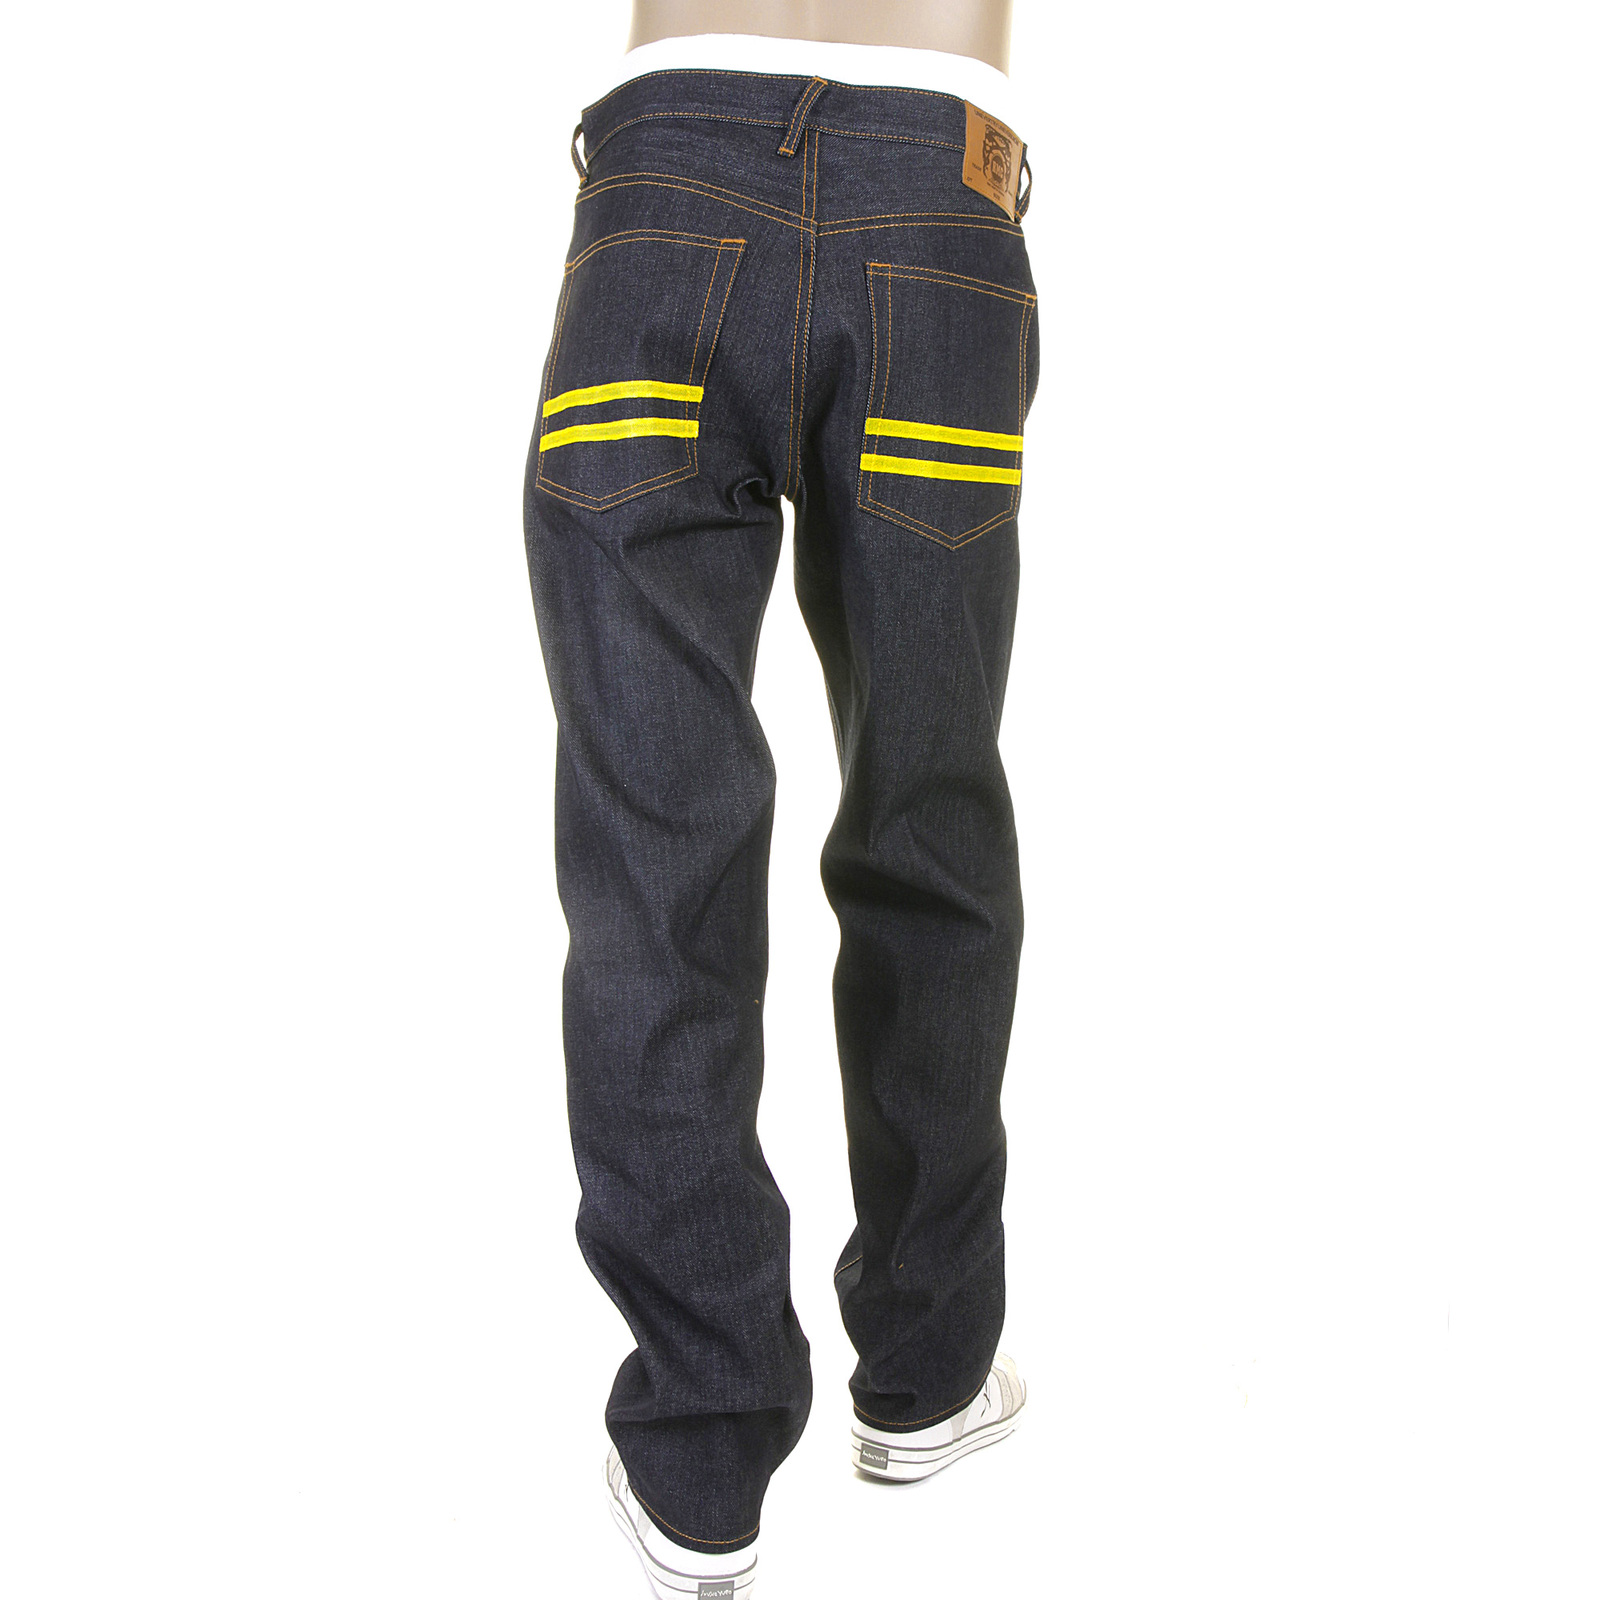 Classy Five Pocket Hand Painted Slim Fit Jeans from RMC